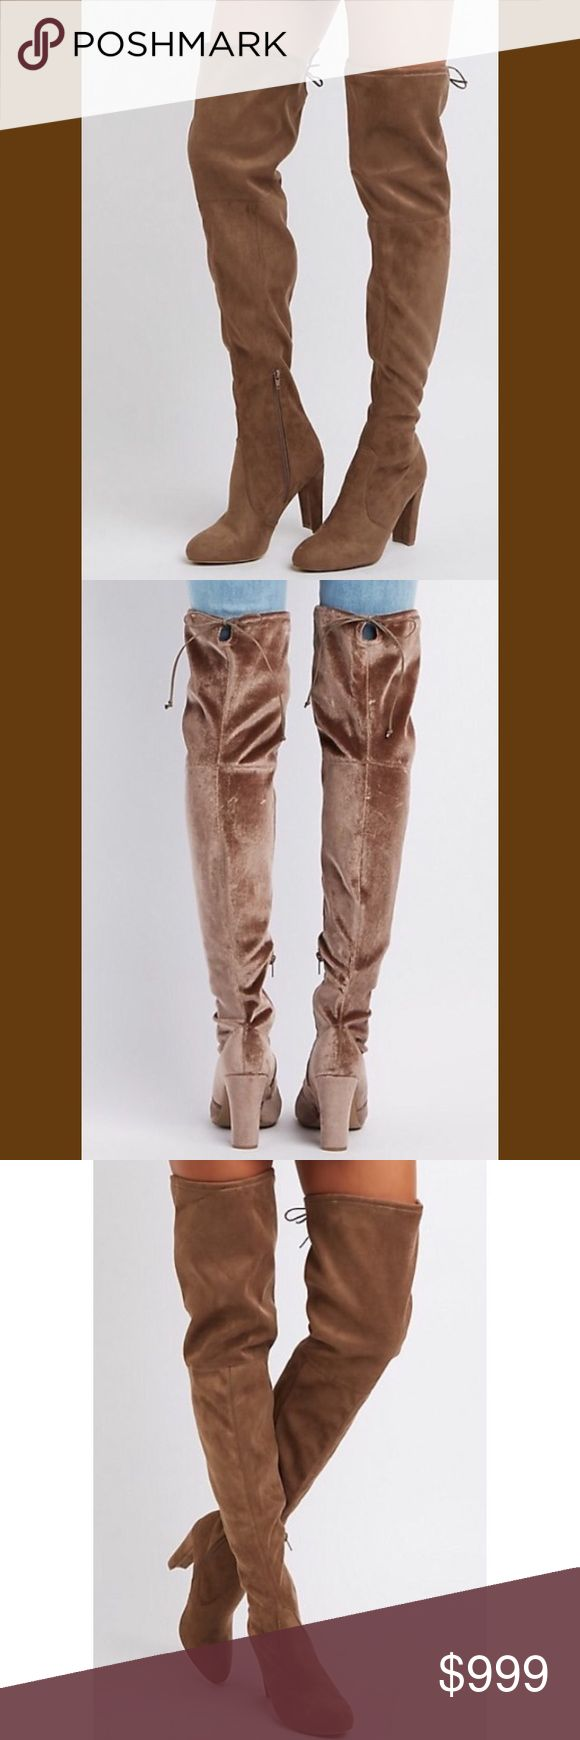 NWT, NIB Over the knee boots. Yours will be the velvet/shiny taupe. All pix show exact same style boot at different angles. Has a zipper at the instep. Ties in the back. Brand New in box.The lid has a little tear in the corner. Charlotte Russe Shoes Over the Knee Boots